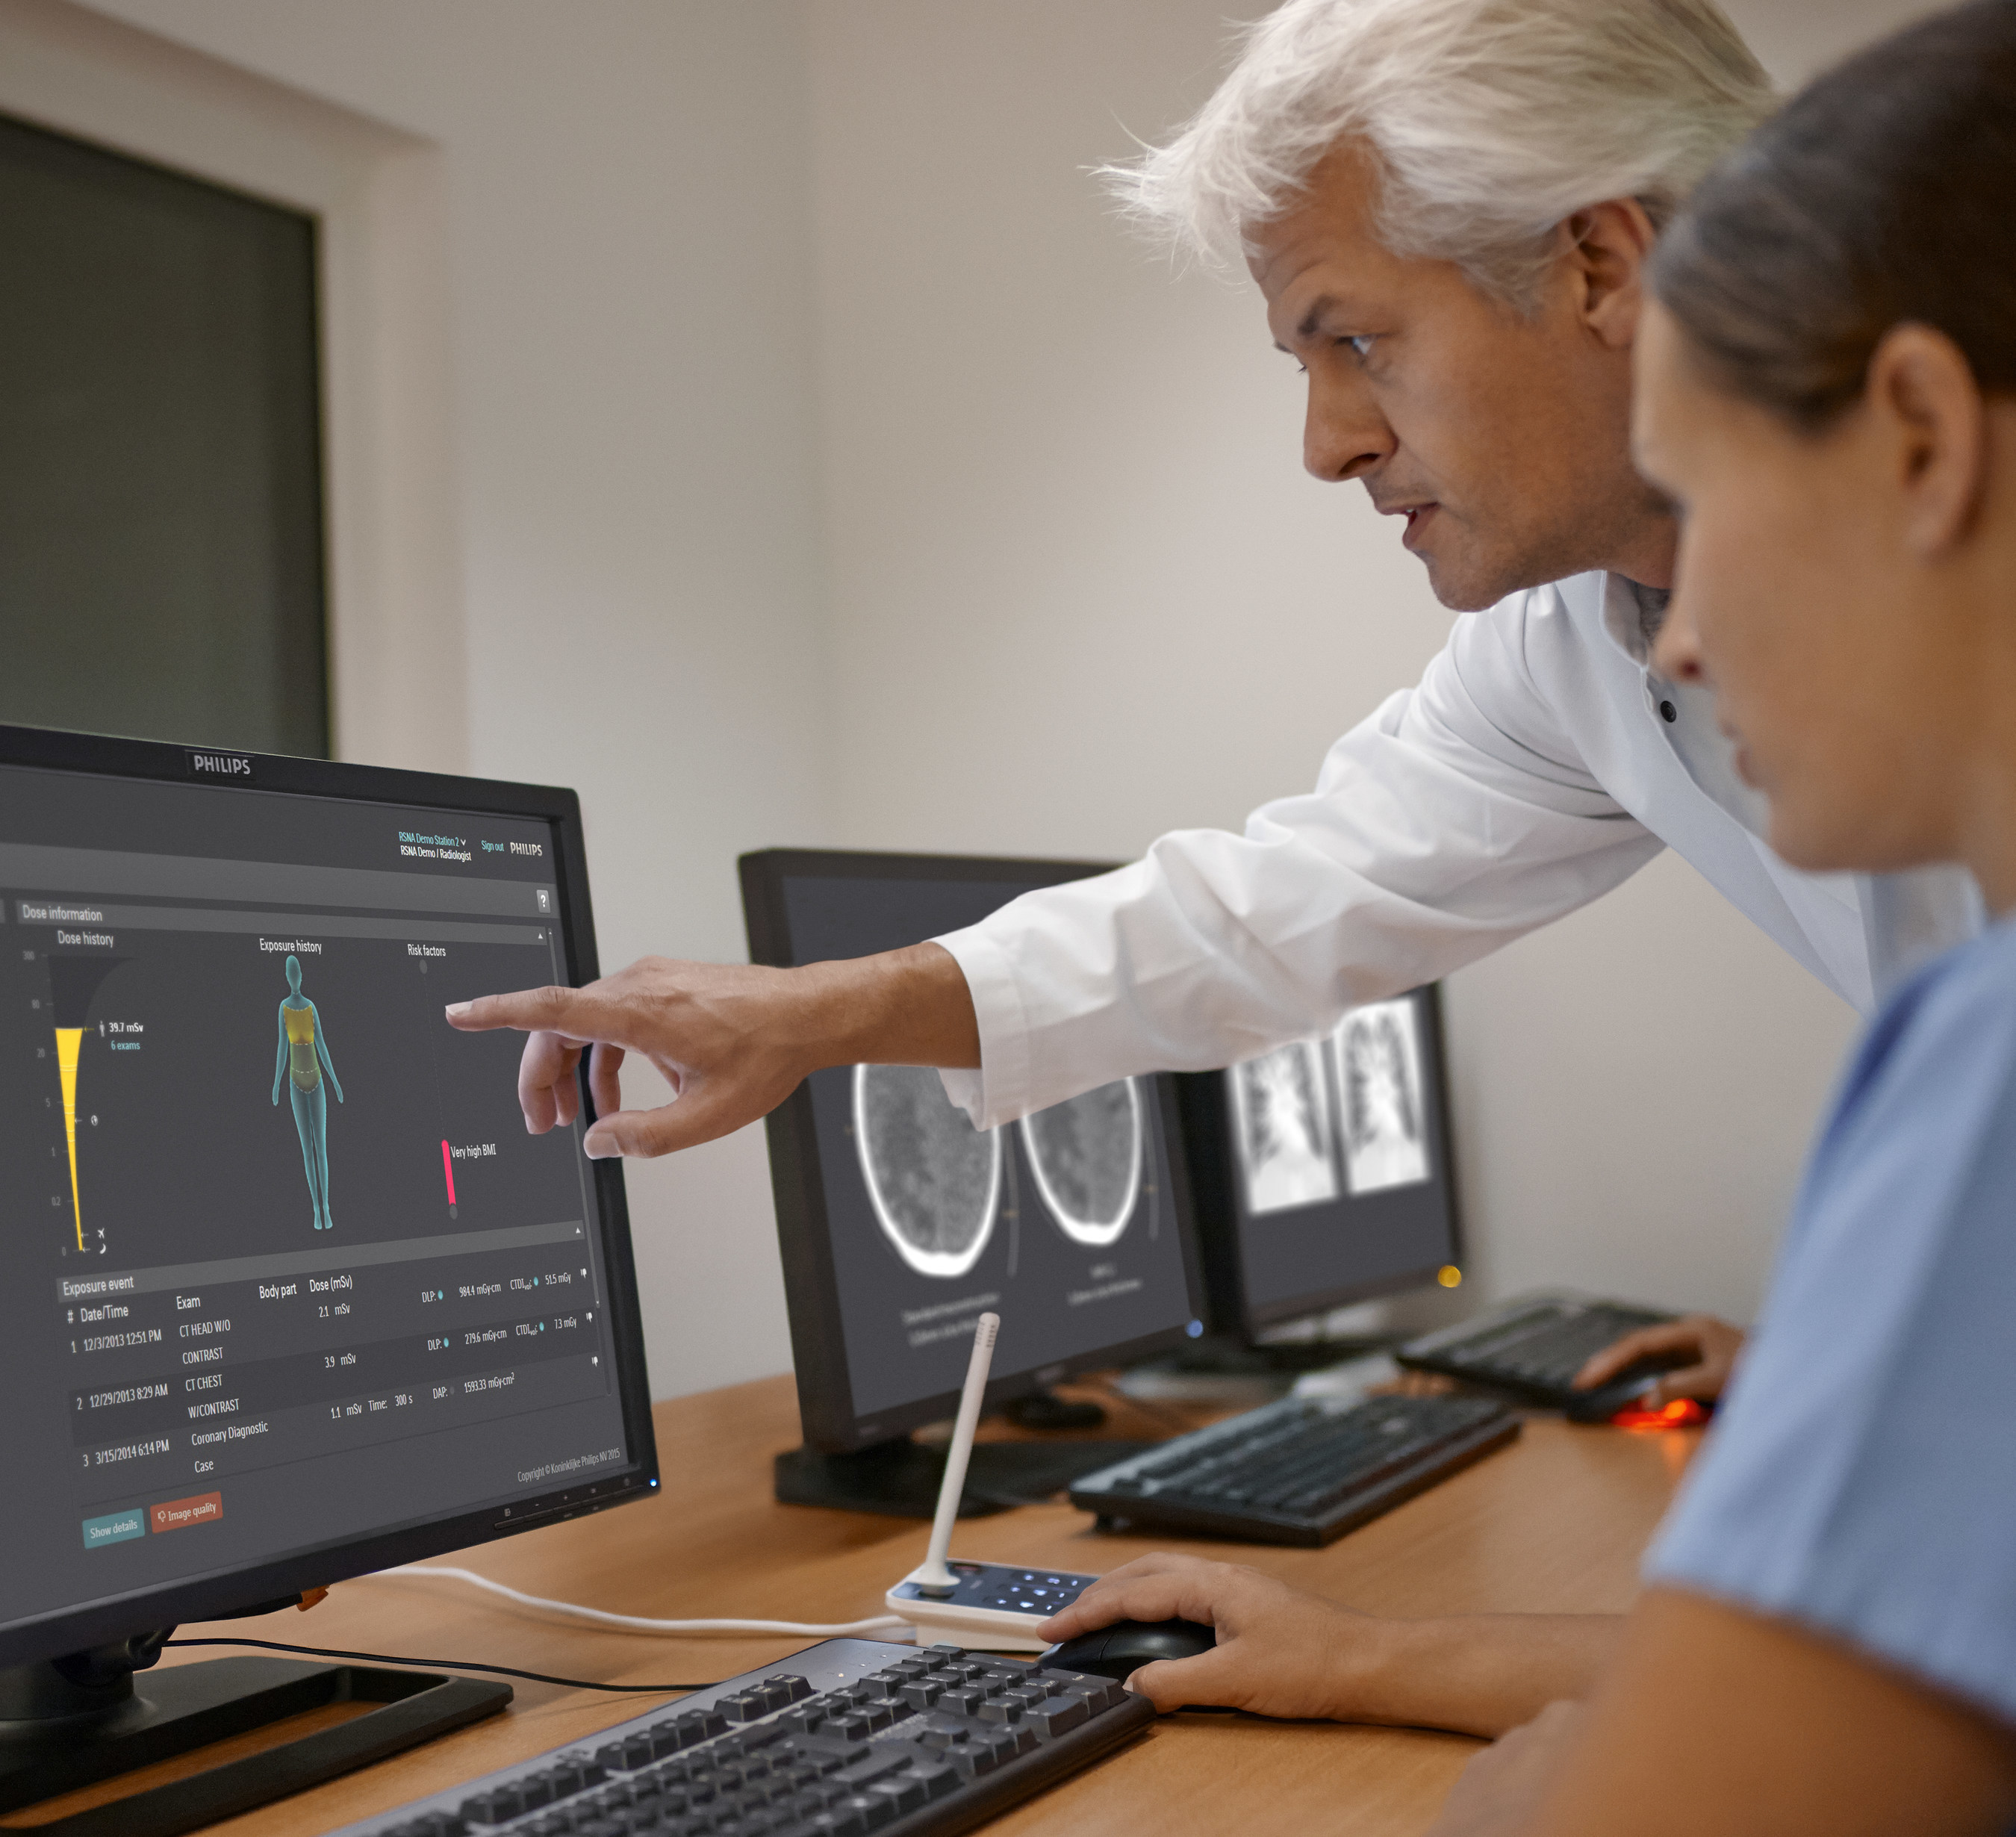 Philips DoseWise Portal 2.2 software allows healthcare providers to record, track and analyze radiation exposure to patients and clinicians